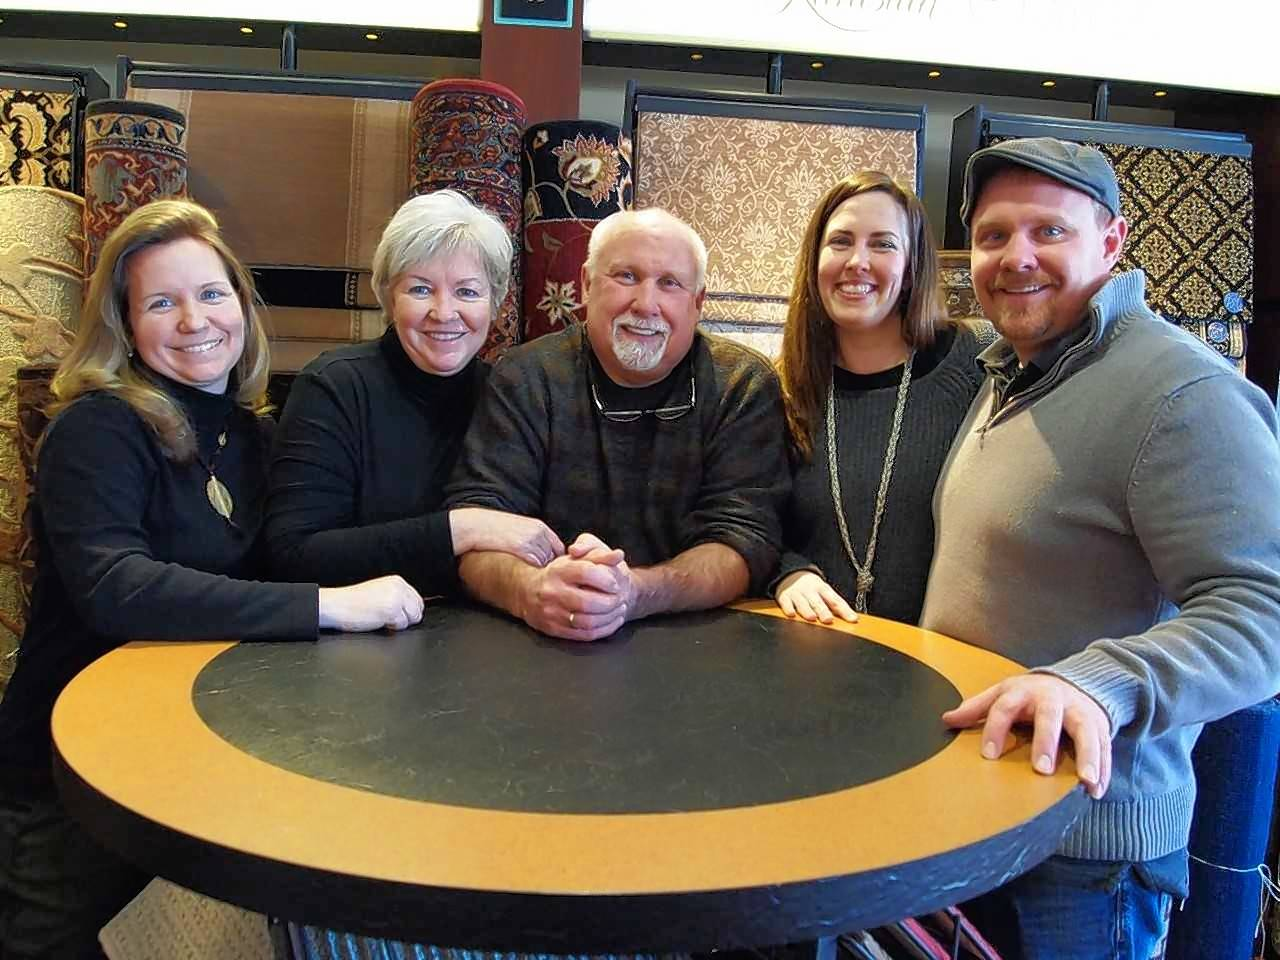 The Martin family, owners of Russell Martin Carpets and Rugs earned top award. Daughter Kate Moeller, Rae and Dave Martin, Rebecca and Sam Martin run the business.